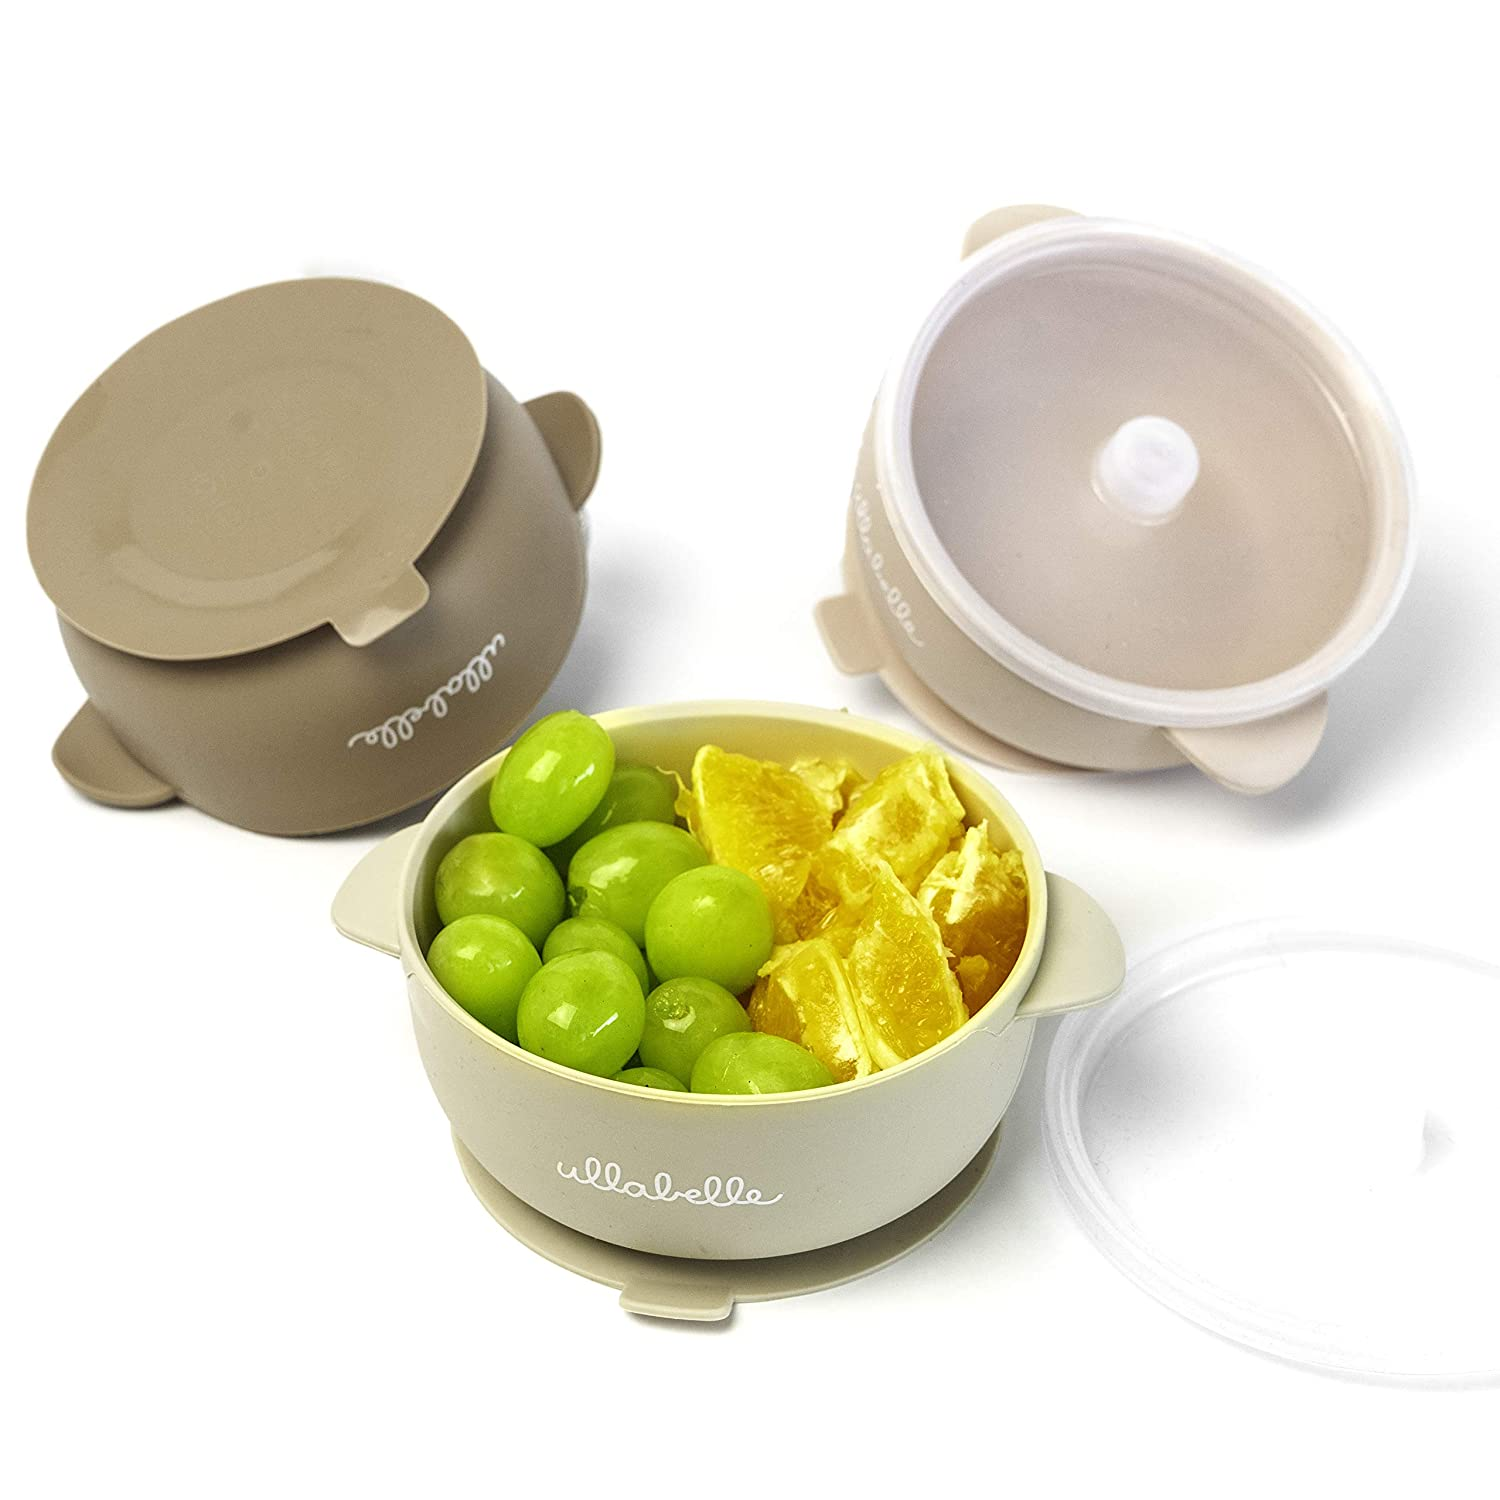 Ullabelle Silicone Baby Bowls with Lids   Toddler Food Storage Bowls   100% Food Grade Silicone   BPA Free and Nontoxic Material   Independent Feeding (Beige, 3 Bowls)